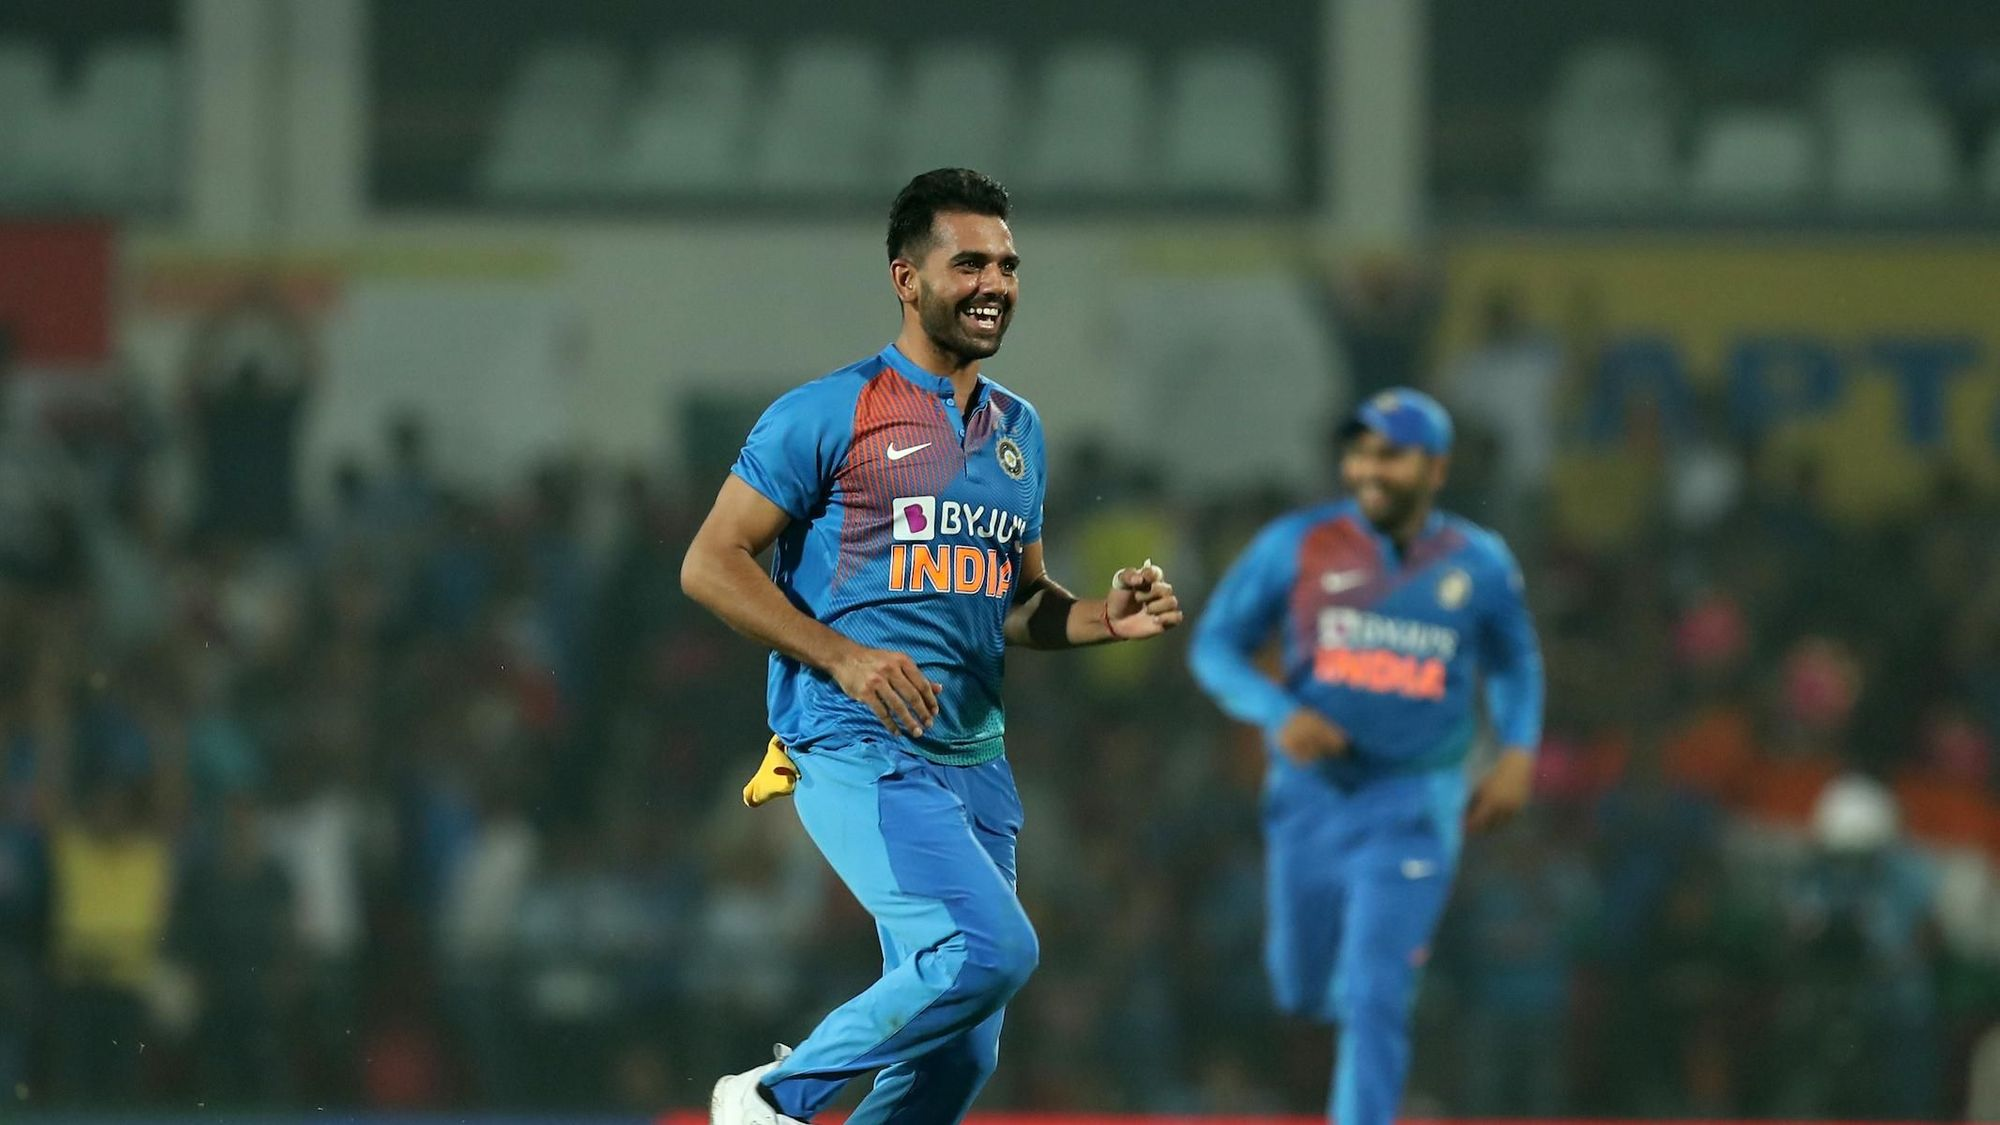 Deepak Chahar had already taken three crucial wickets in the decider against Bangladesh, and he capped things off with a hat-trick to help bowl Bangladesh out for 144 in chase of 175. His figures of 6/7 became the best registered in all men's T20Is.